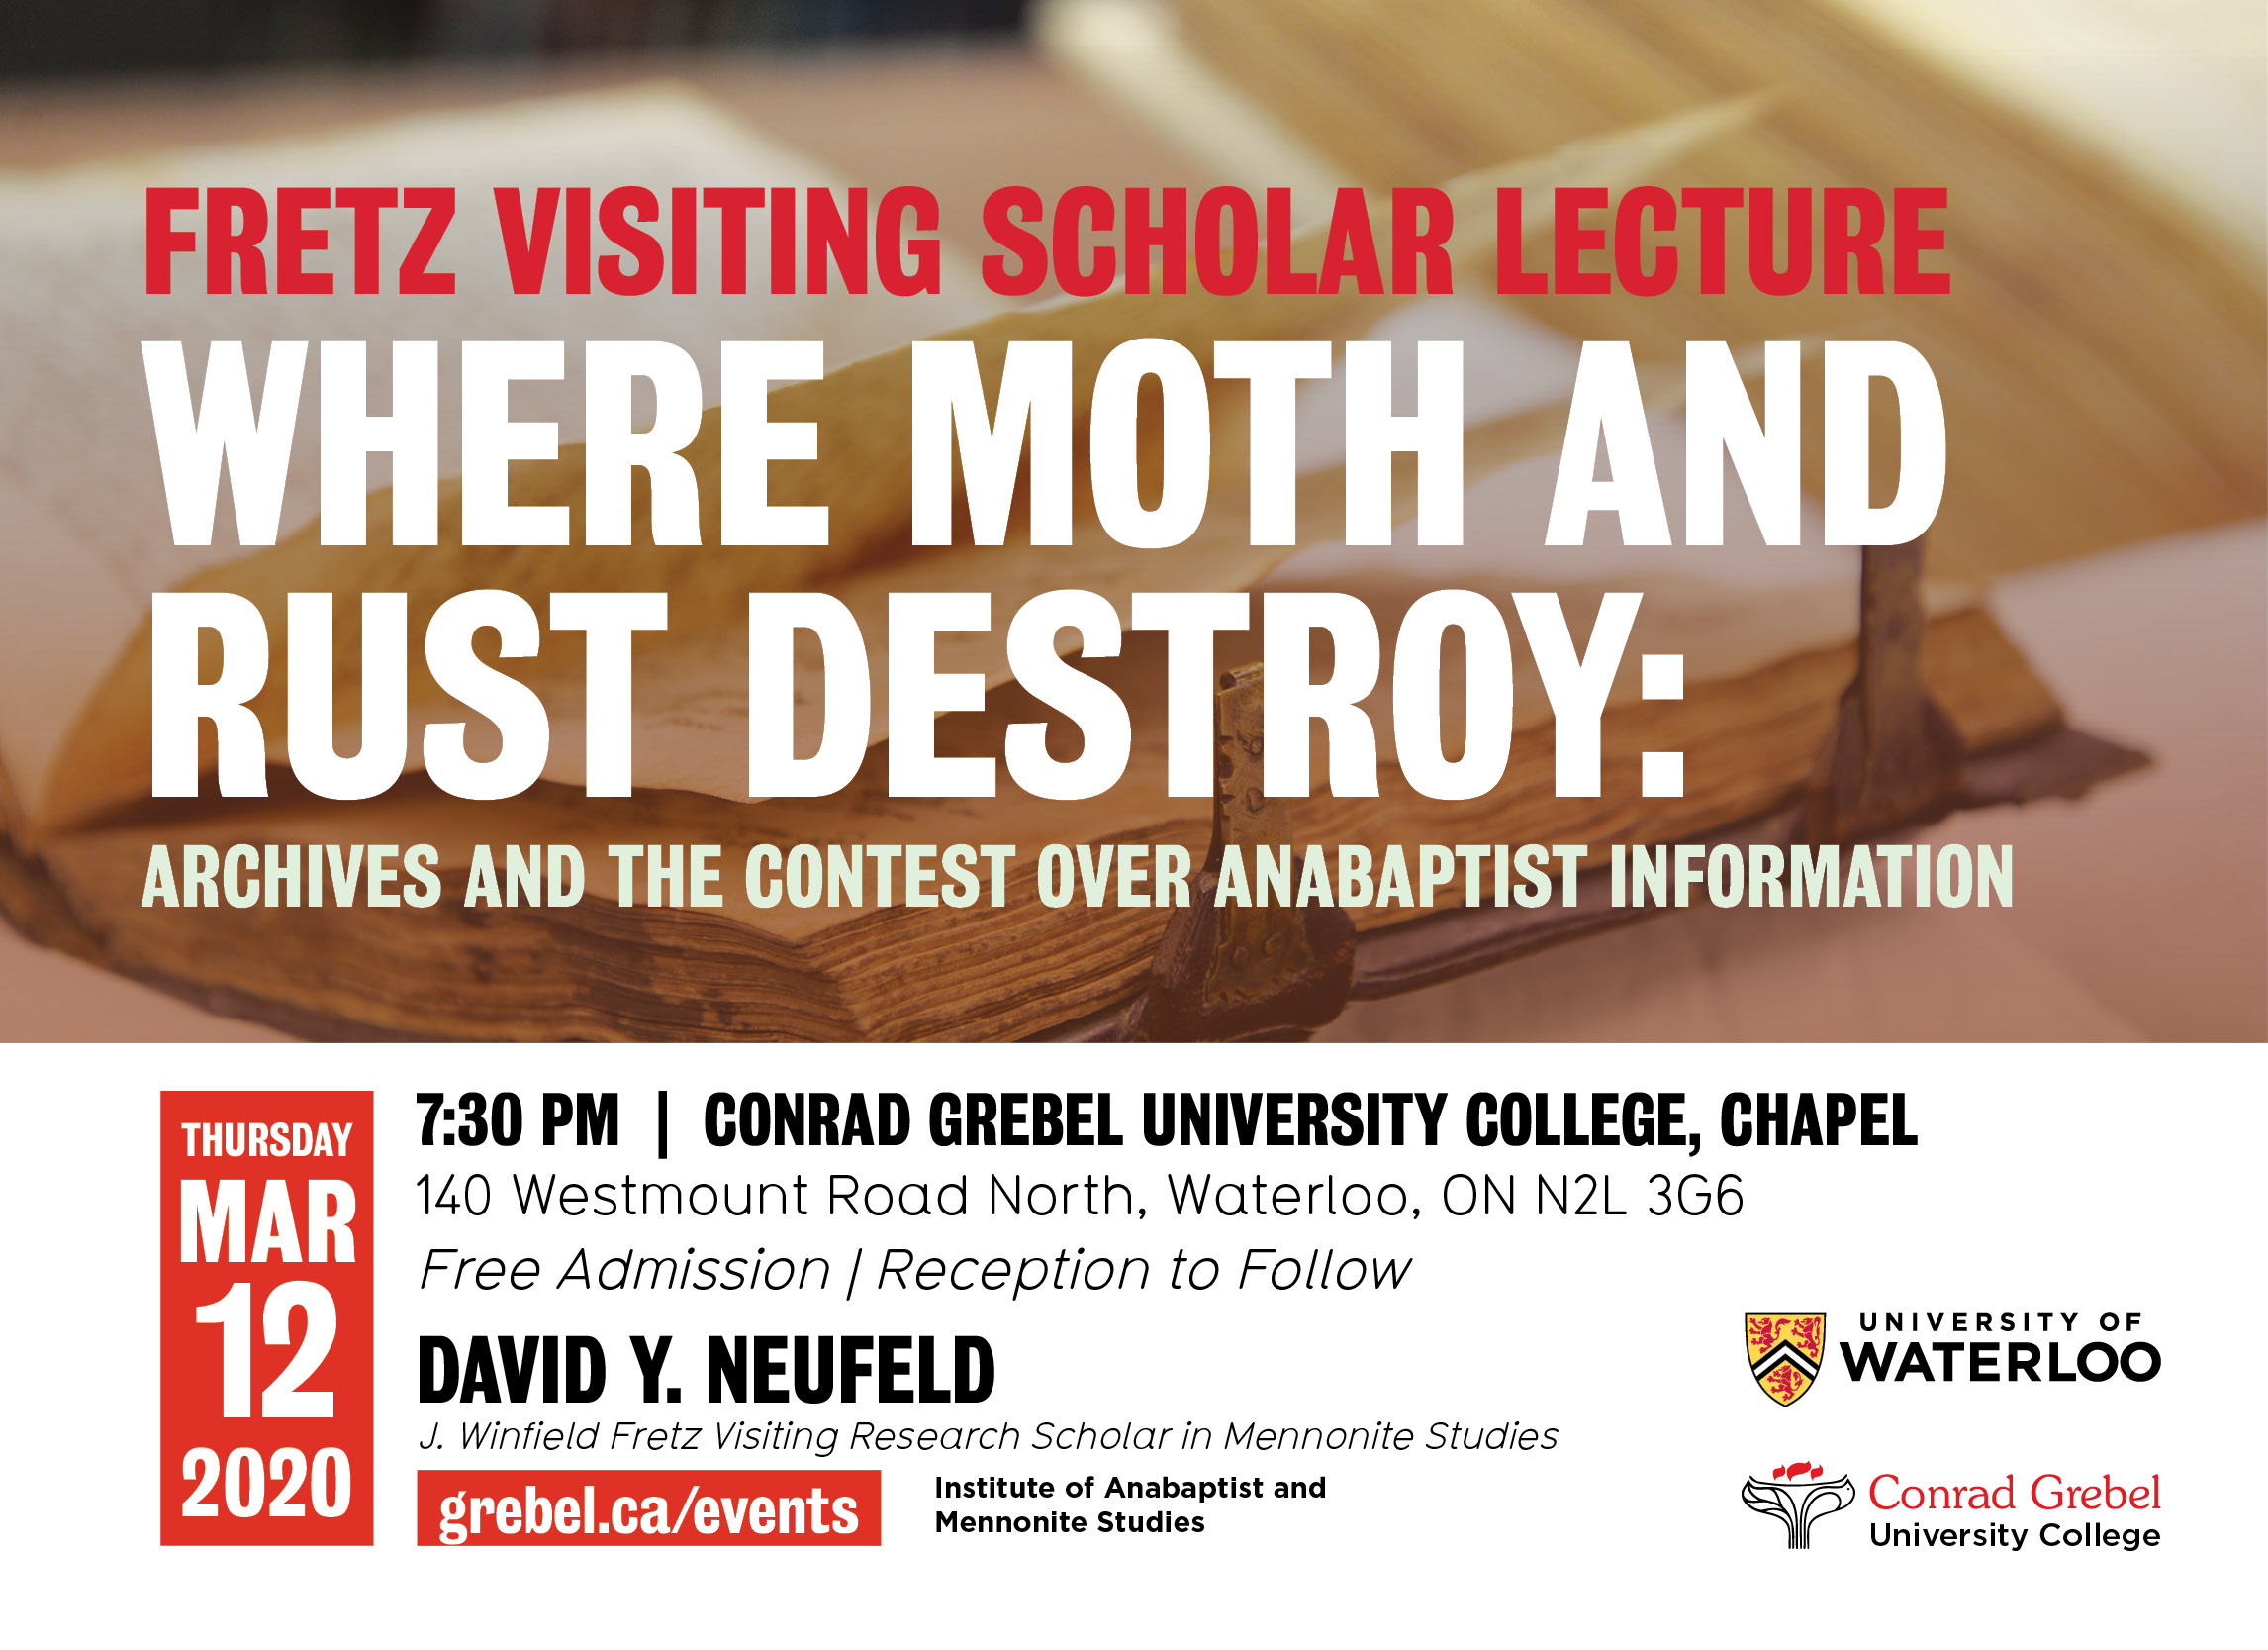 Invitation to Fretz lecture featuring an old book